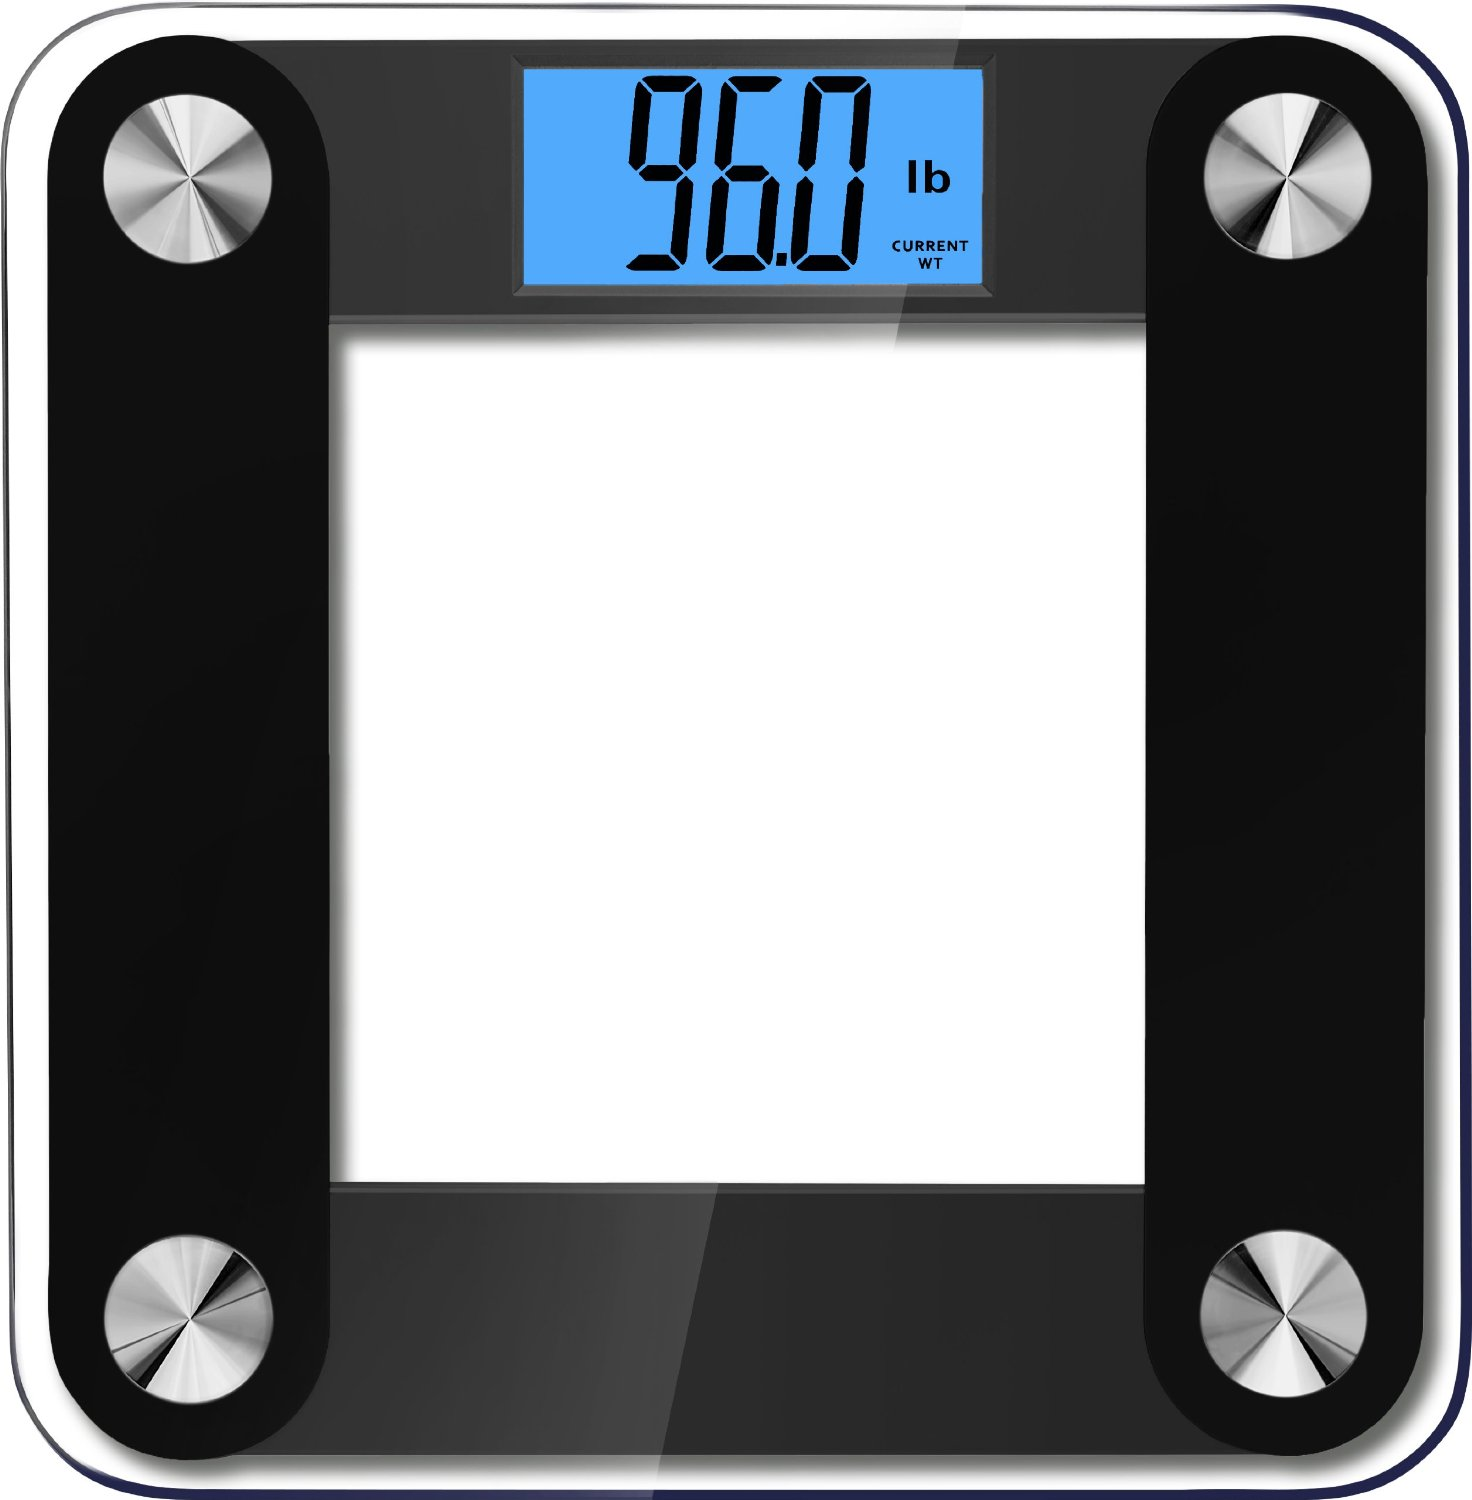 Bathroom scale accuracy consistency - Bathroom Scale Accuracy Consistency 34